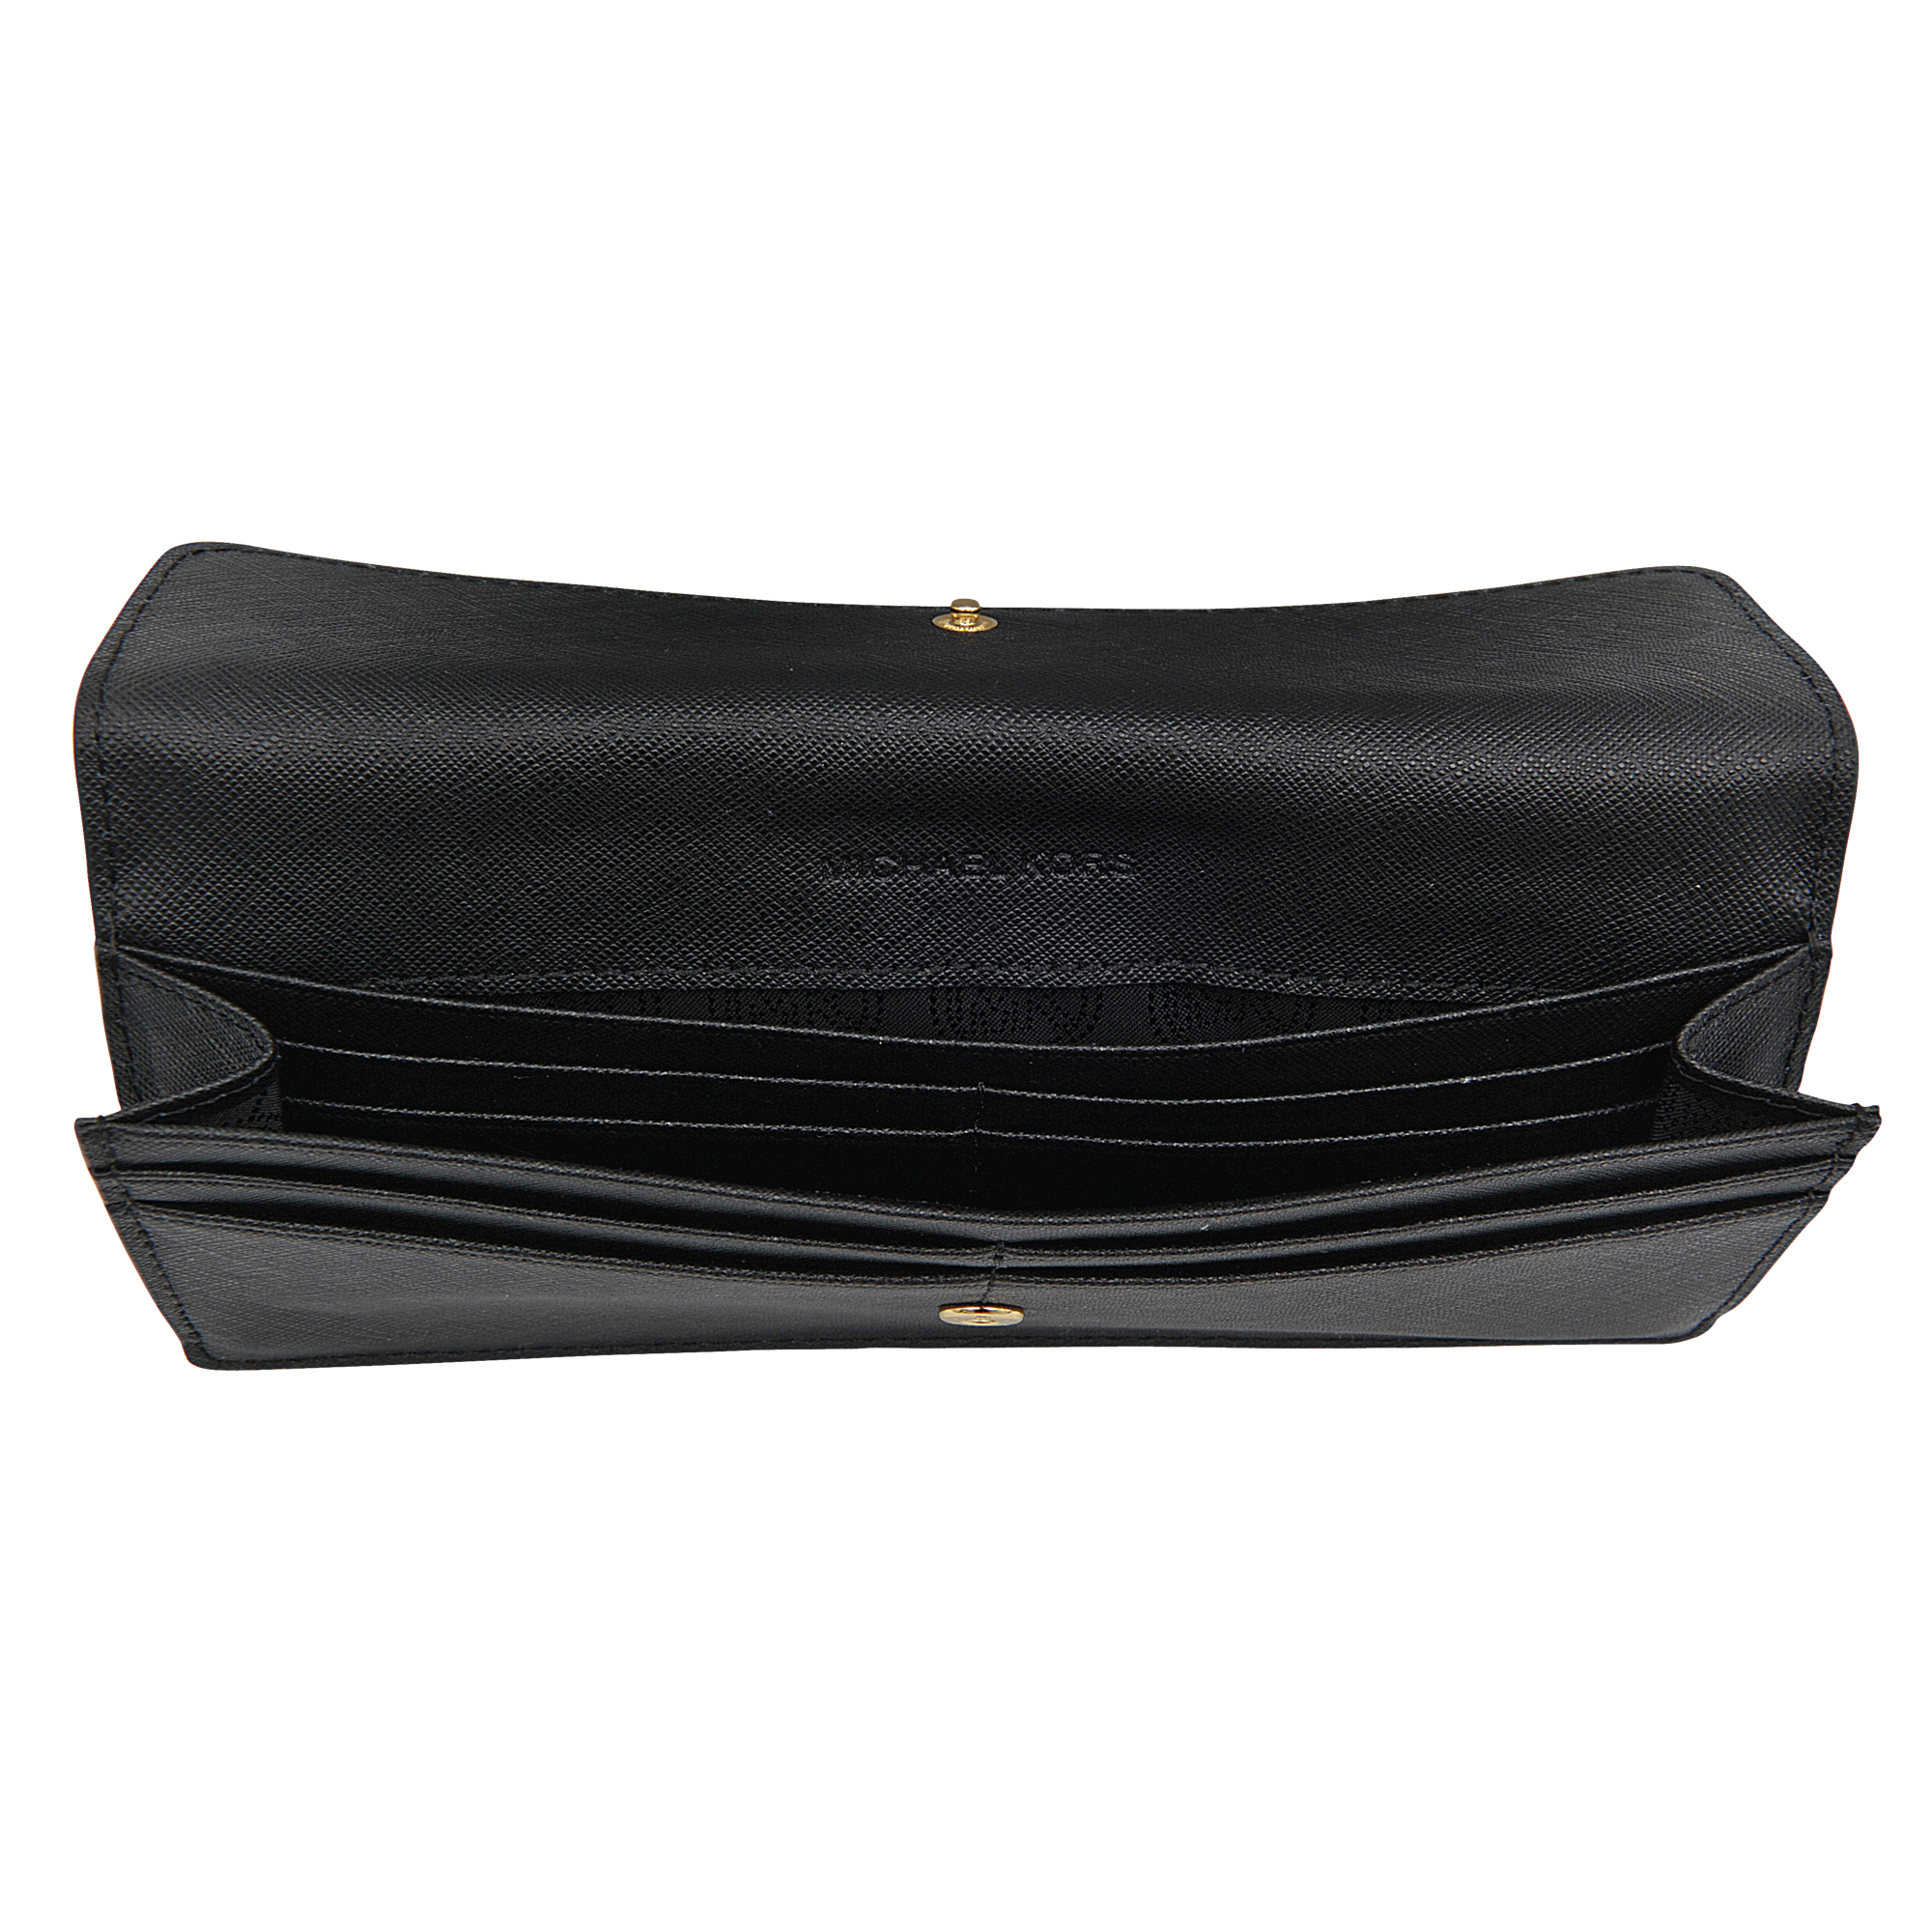 Michael kors Jet Set Travel Flat Wallet 18k in Black